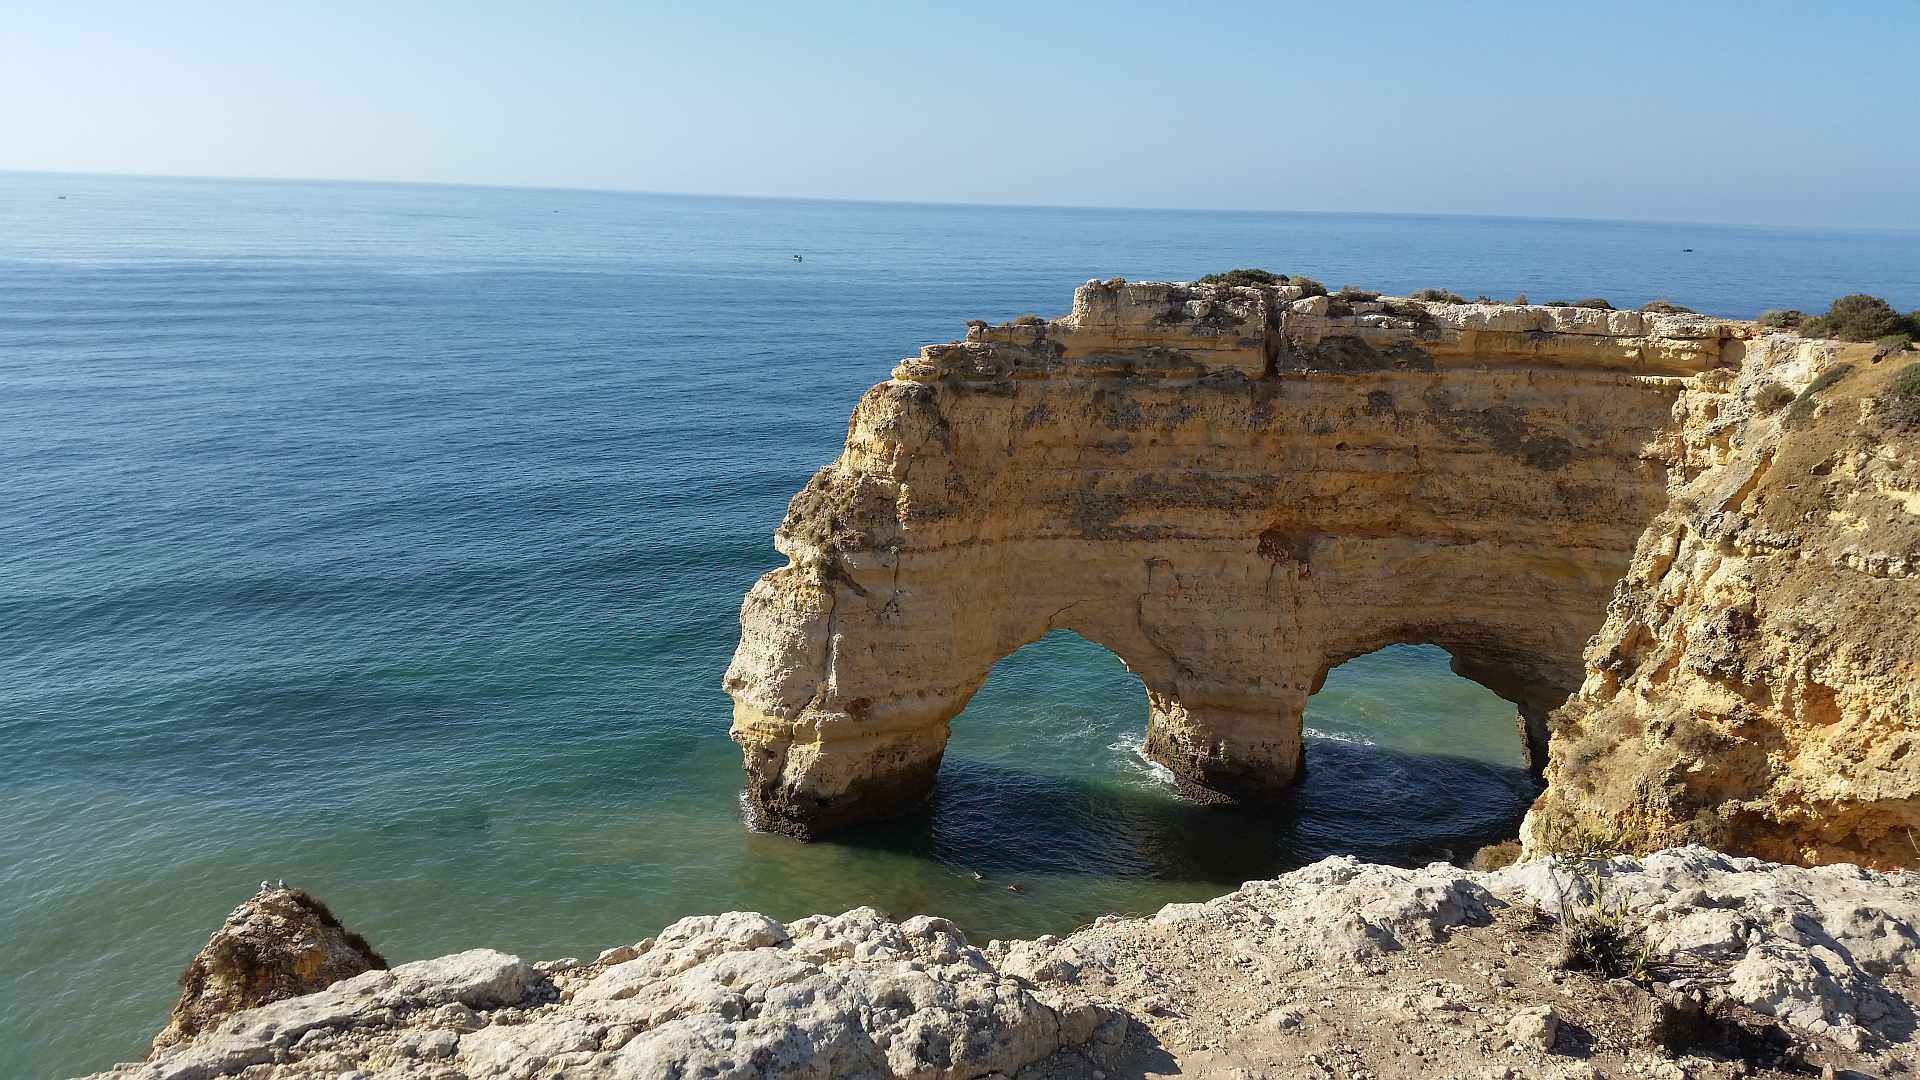 Lagao - Algarve view over the rocks and natural bridge